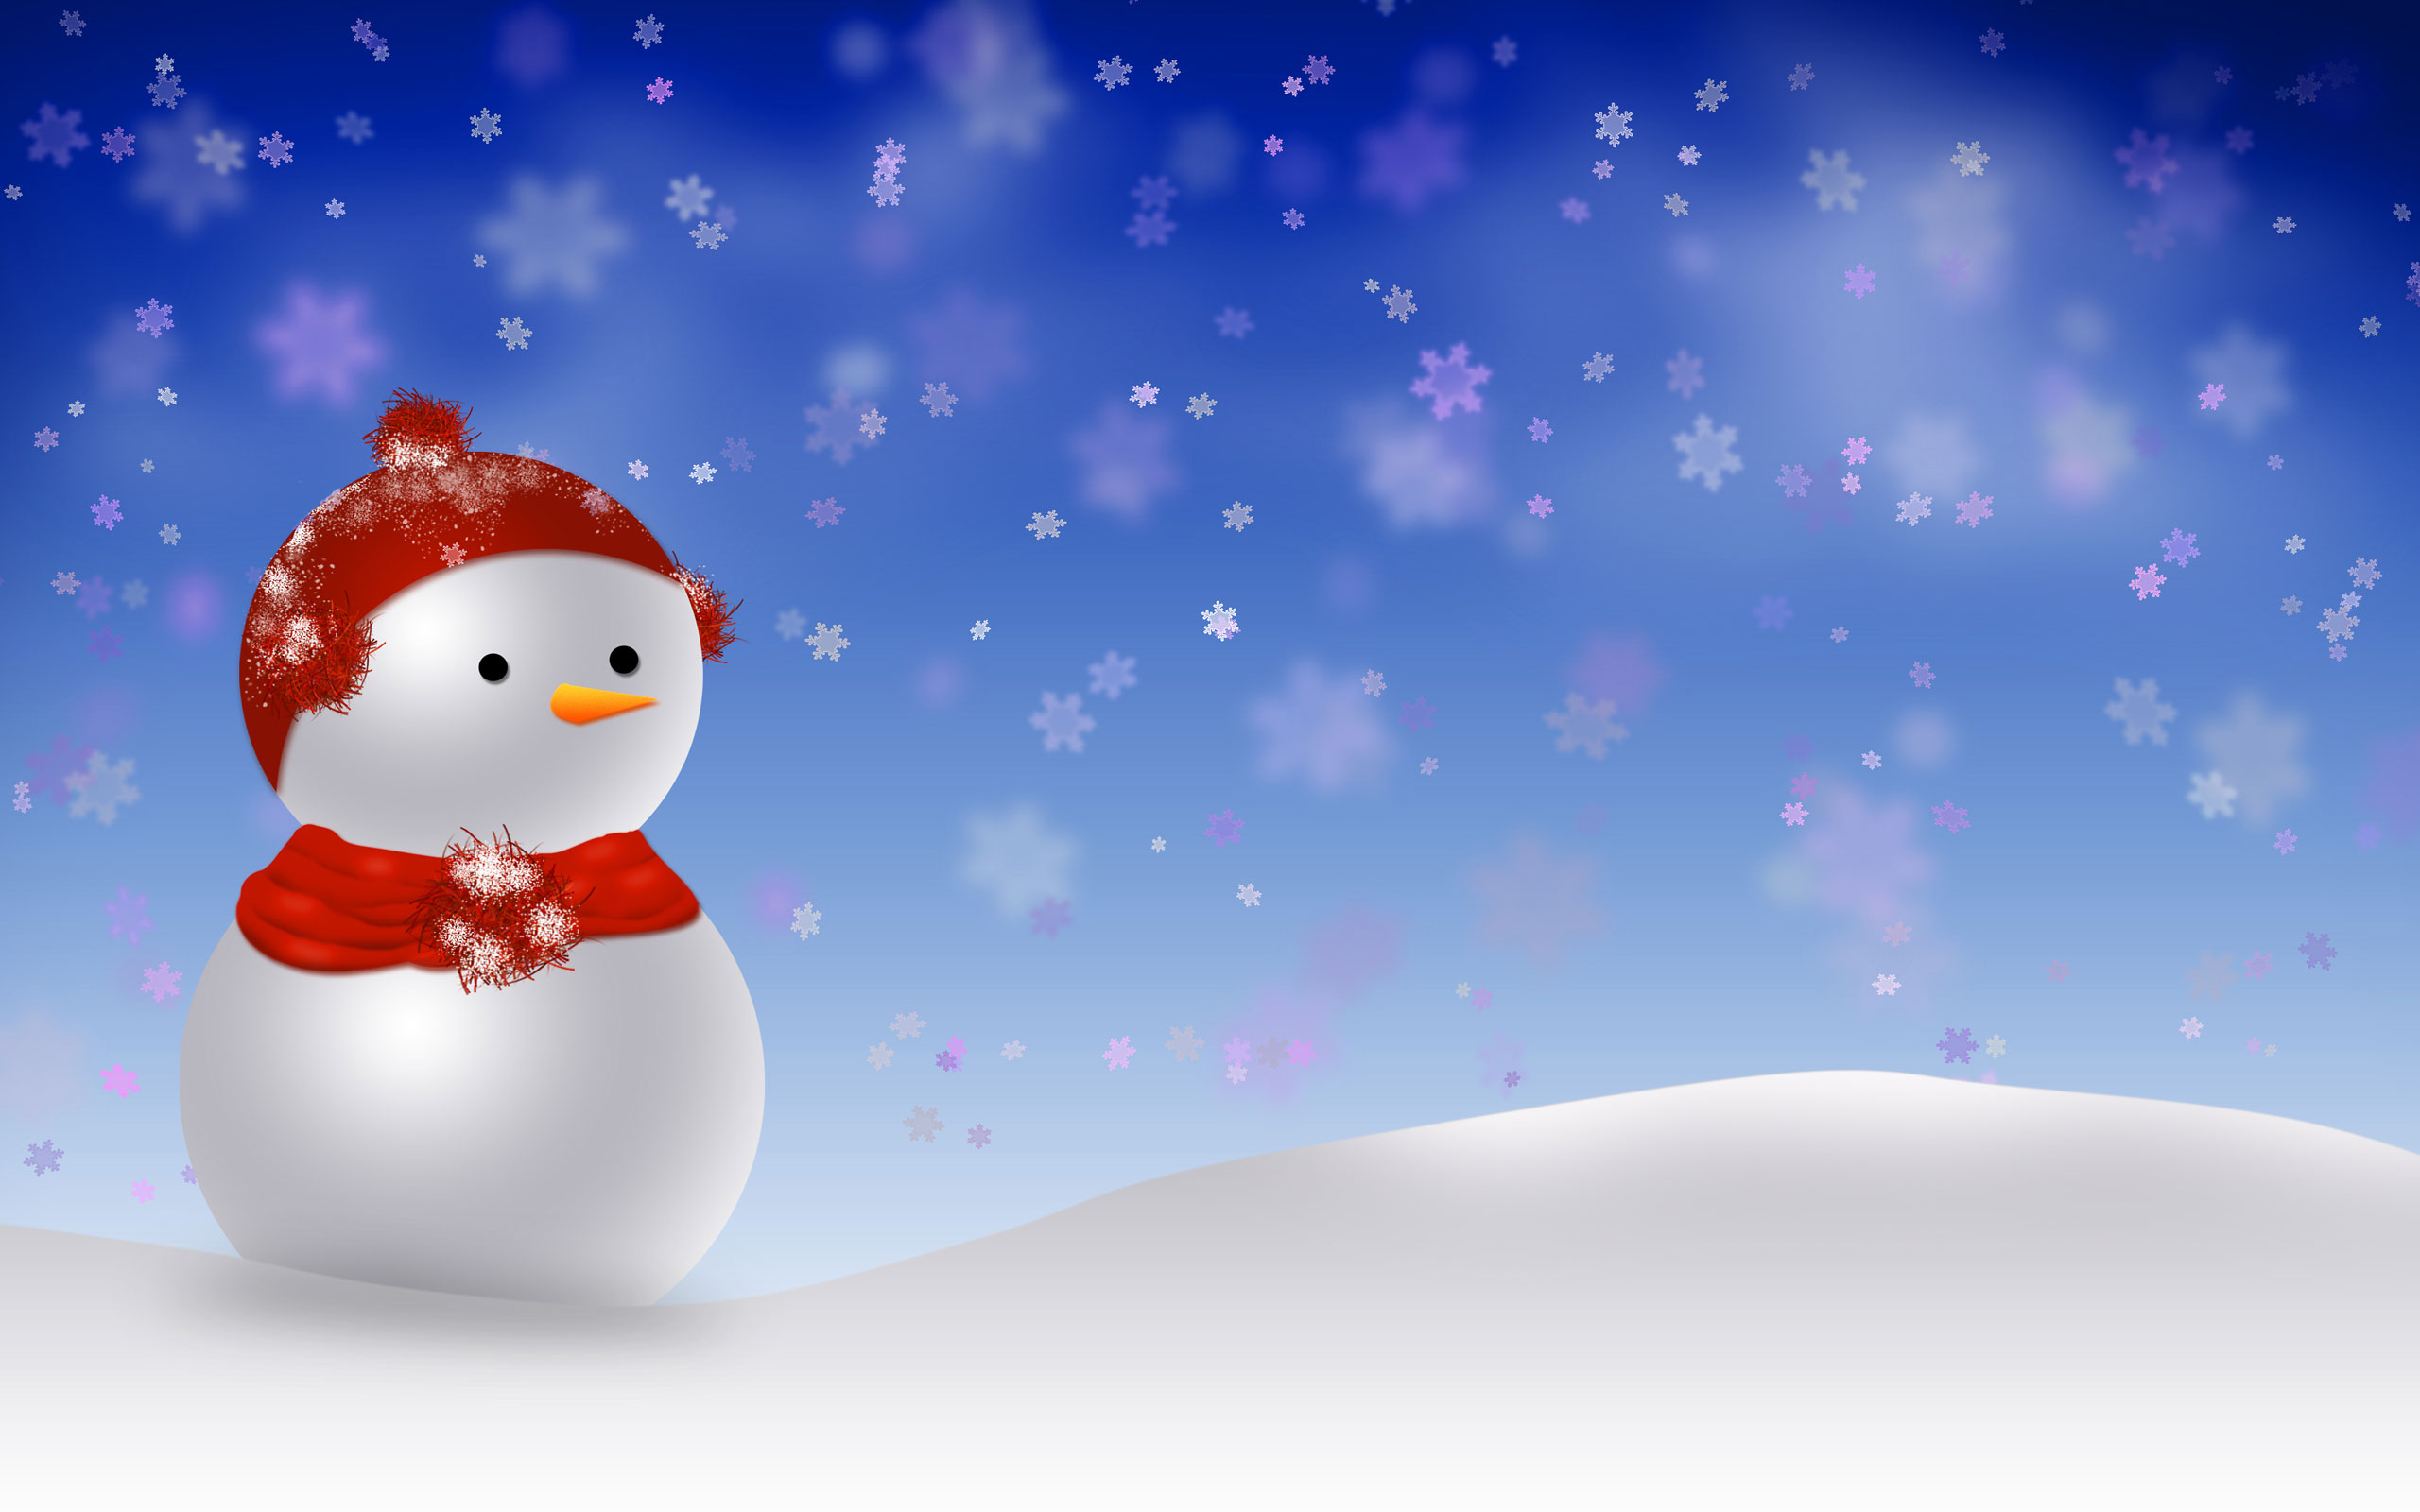 139 1396289 free christmas wallpaper christmas backgrounds snowman